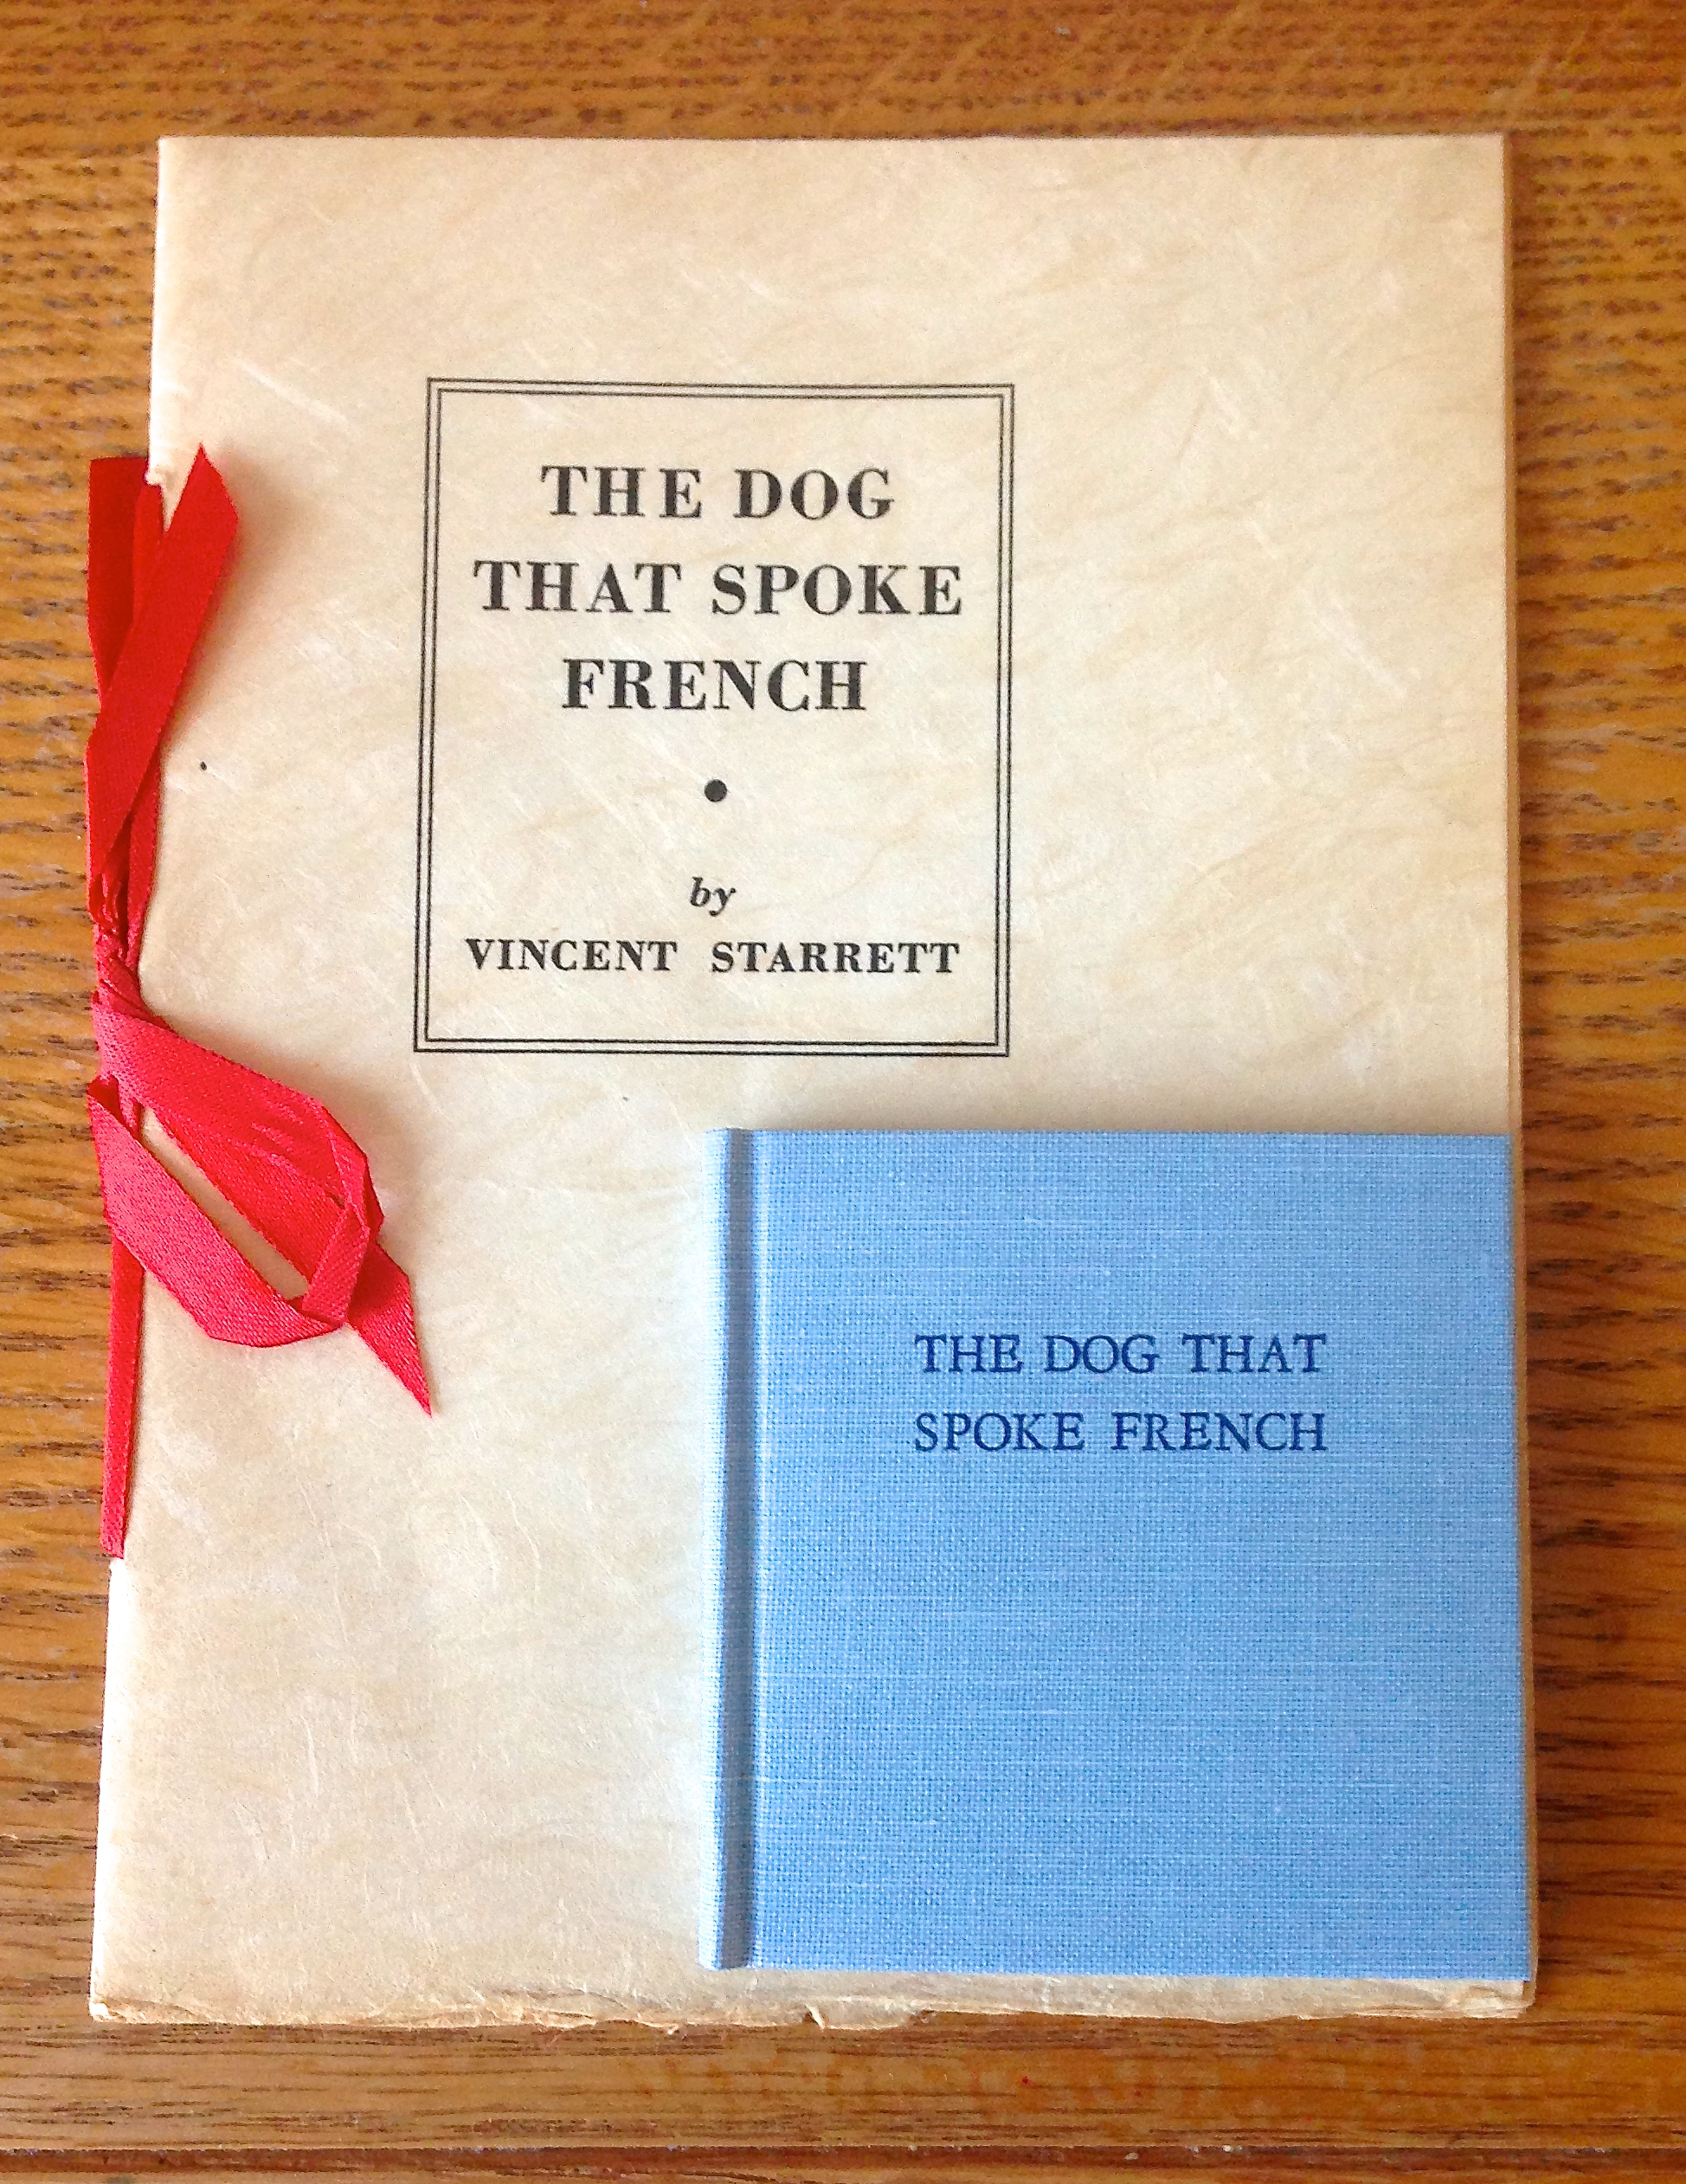 Separated by about 48 years, these two editions of  The Dog That Spoke French  prove that a naughty joke never goes out of style.